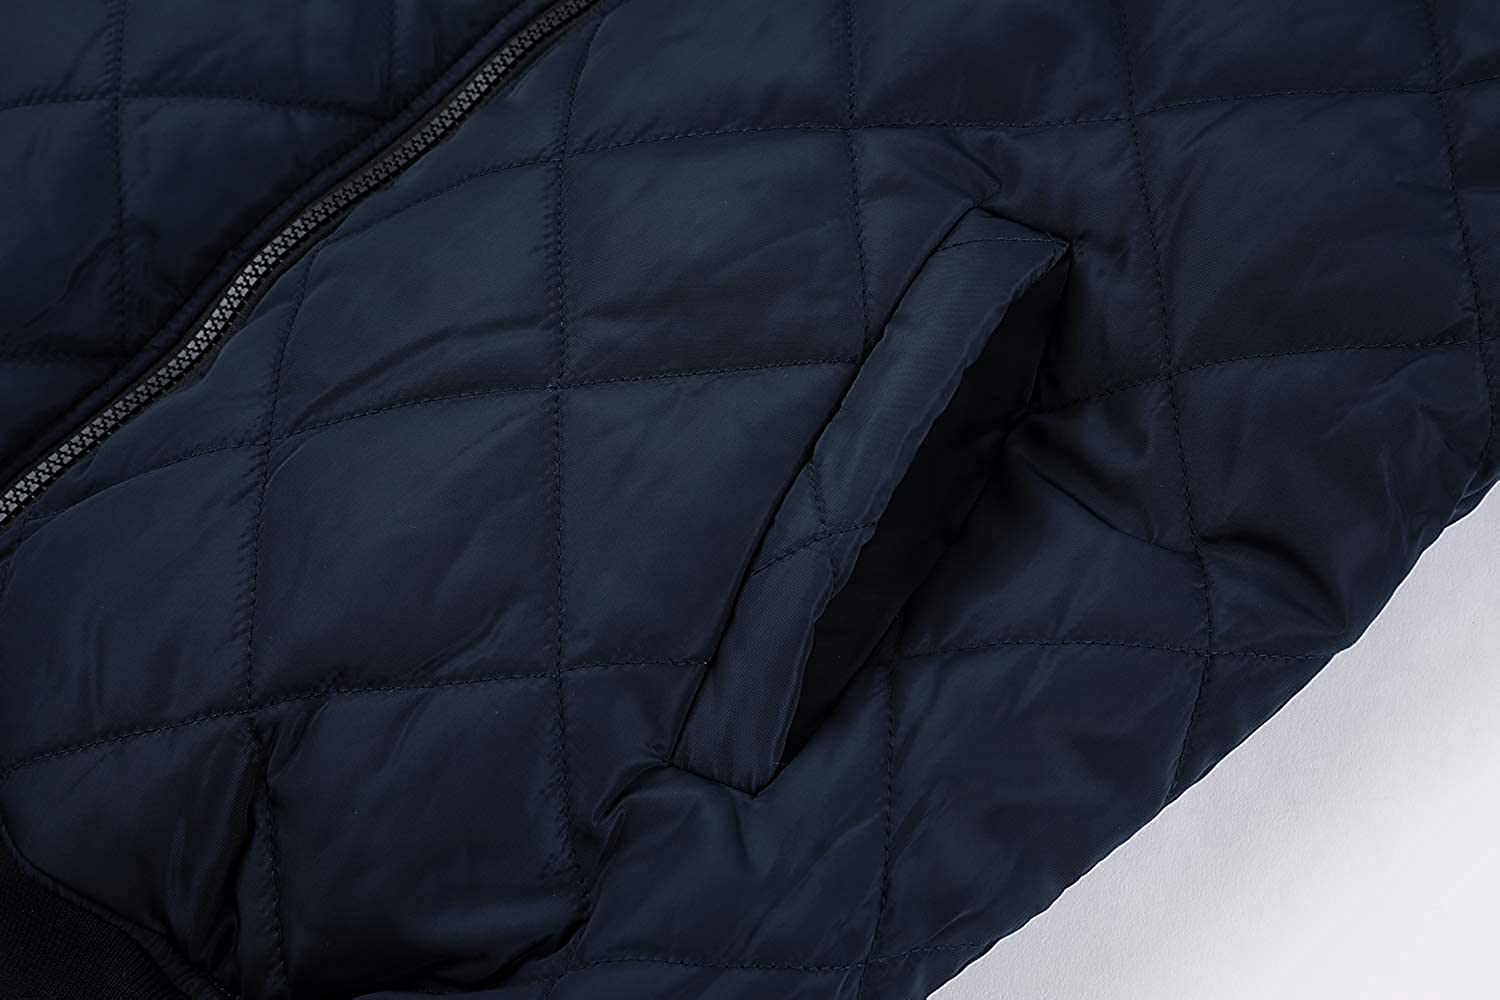 Gemijacka Mens Cotton Quilted Jackets Casual Varsity Bomber Jacket Full Zip Up Winter Warm Outwear